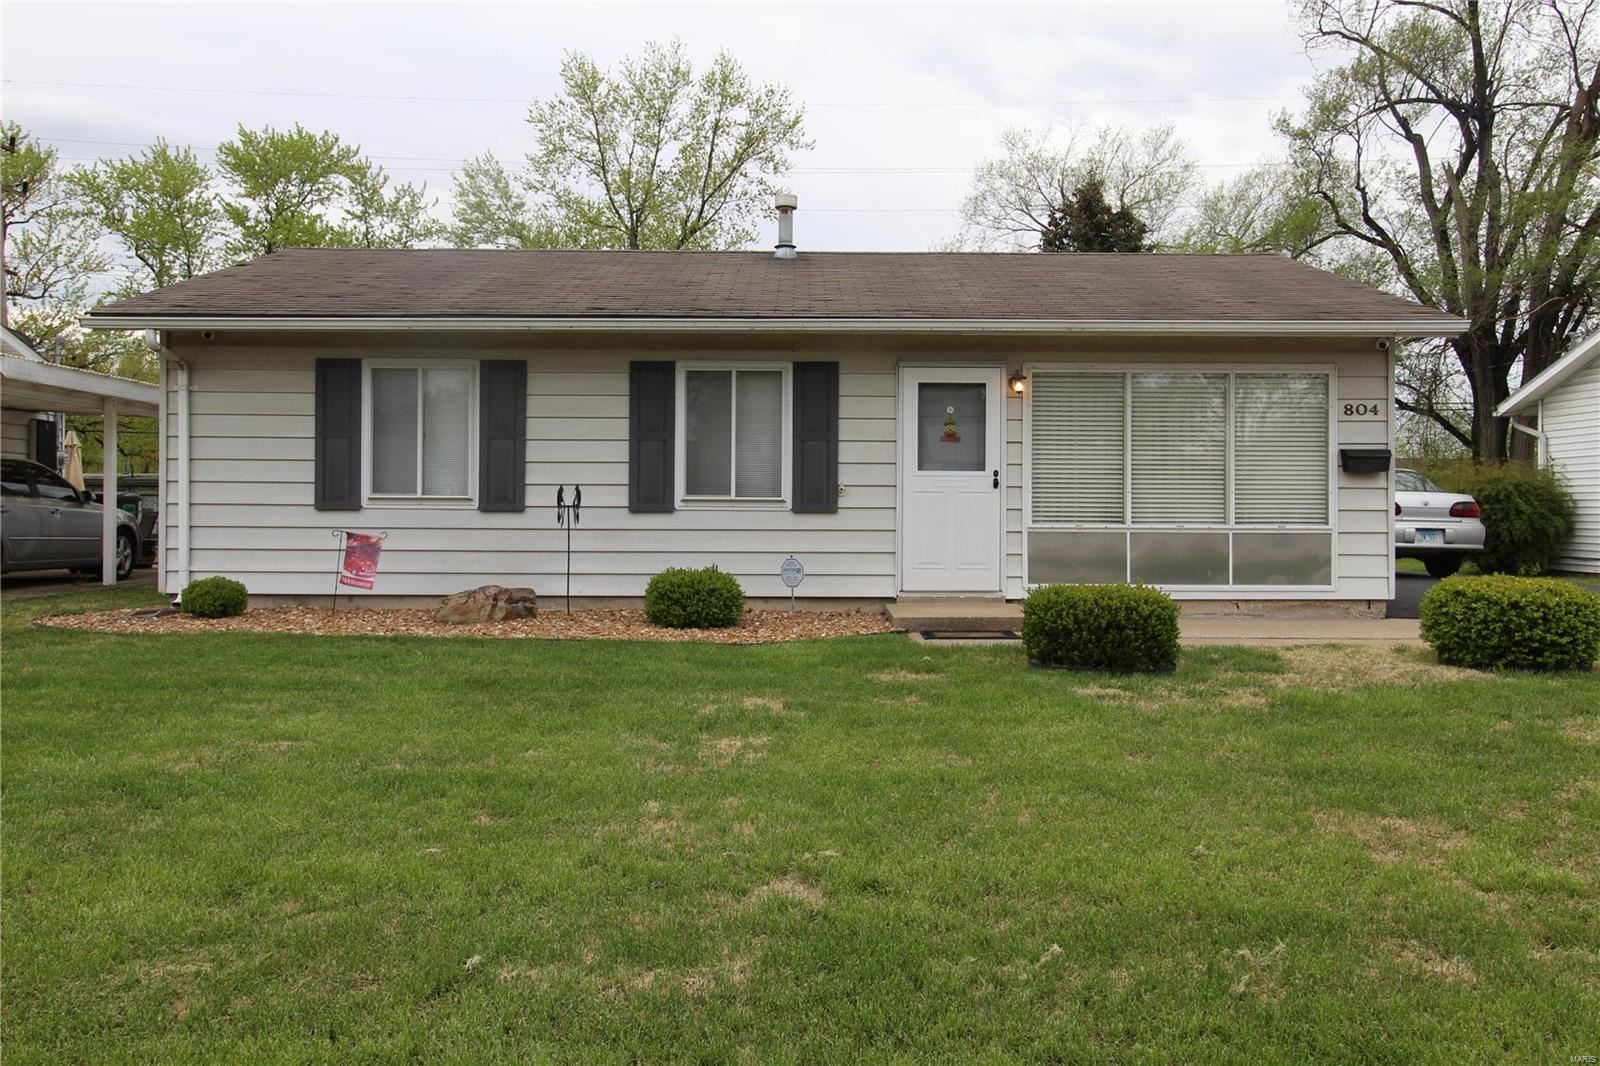 804 Saint Thomas Lane, Cahokia, IL 62206 - MLS#: 20024978